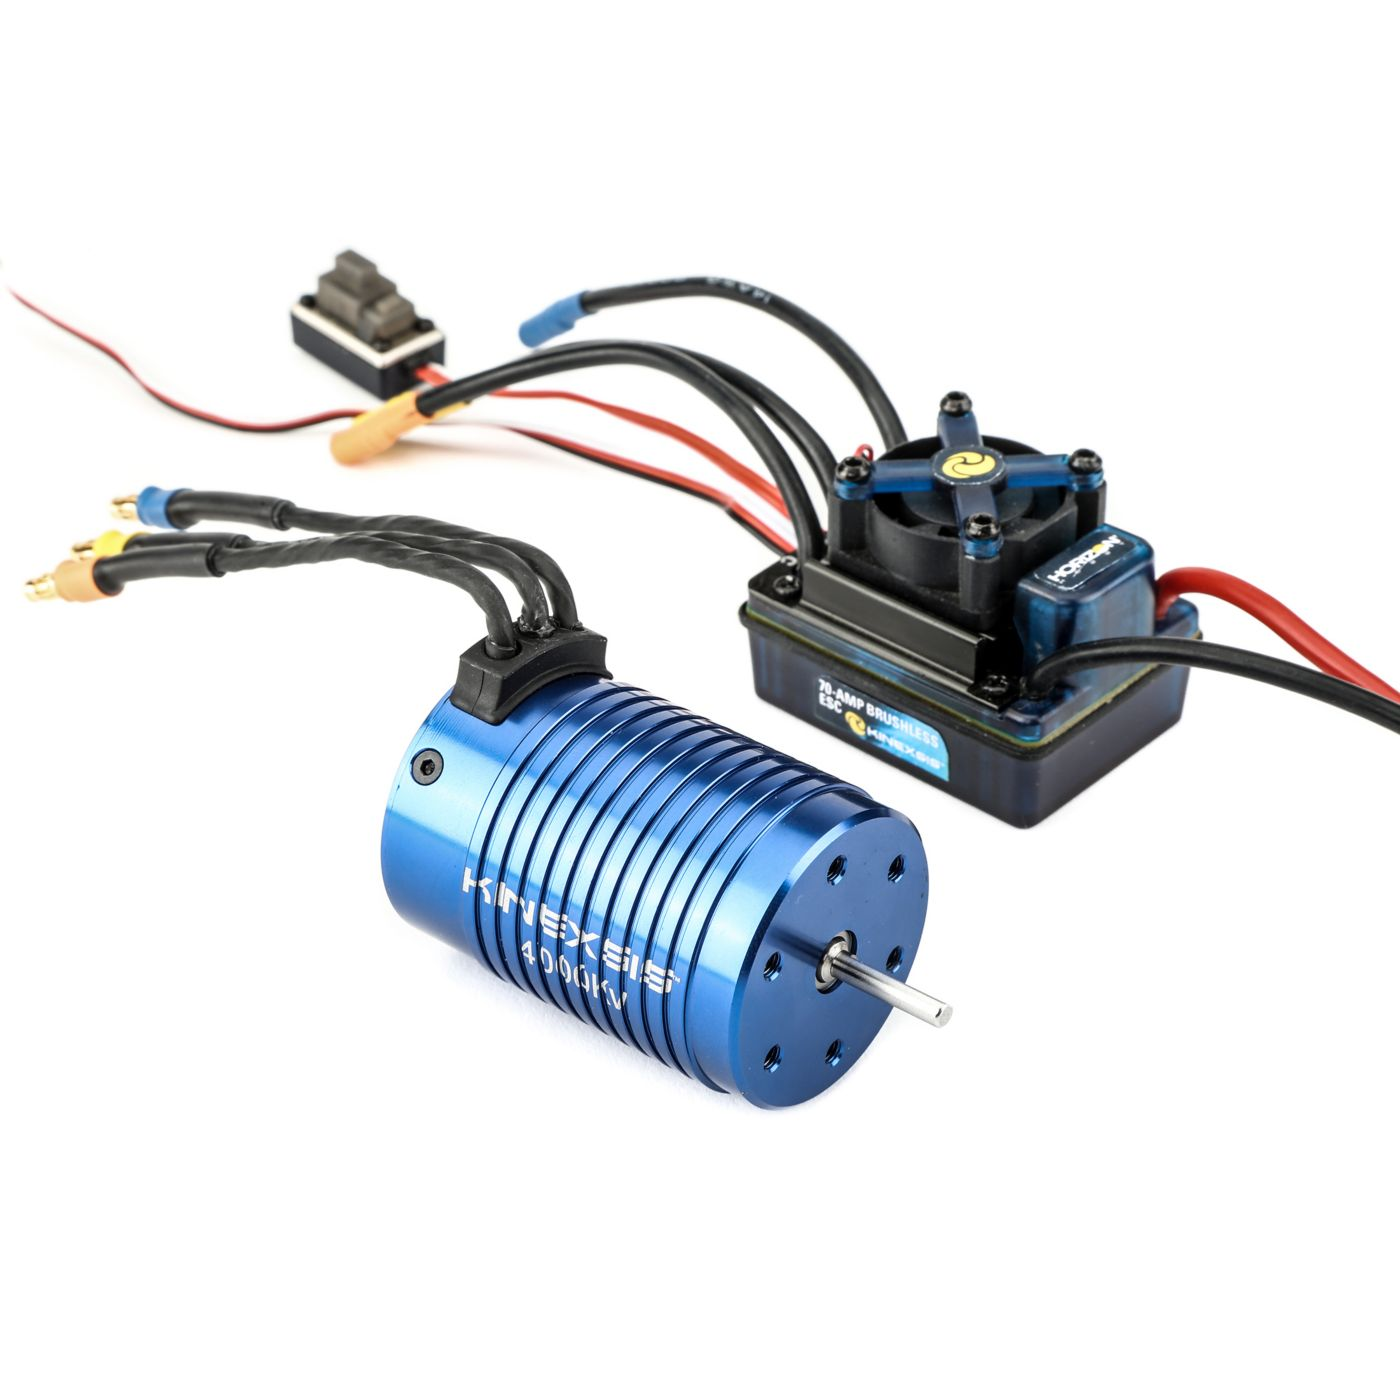 medium resolution of image for 1 10 4 pole 4000kv esc motor combo from horizonhobby